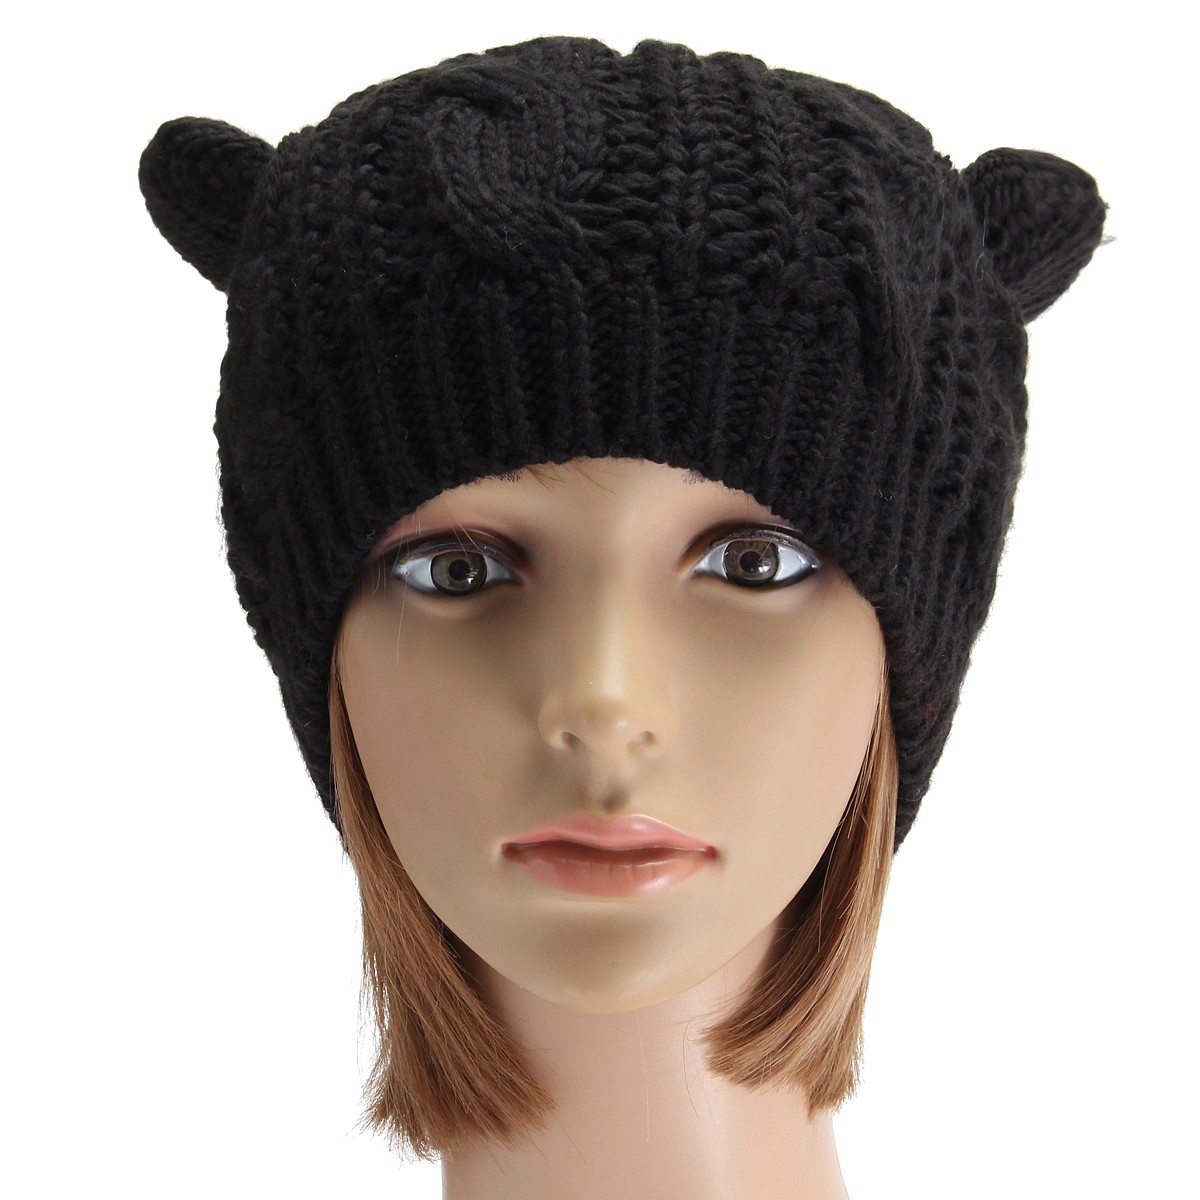 Women Ladies Crochet Knitted Cat Ear Devil Slouch Beanie Hat Winter Warm Cap